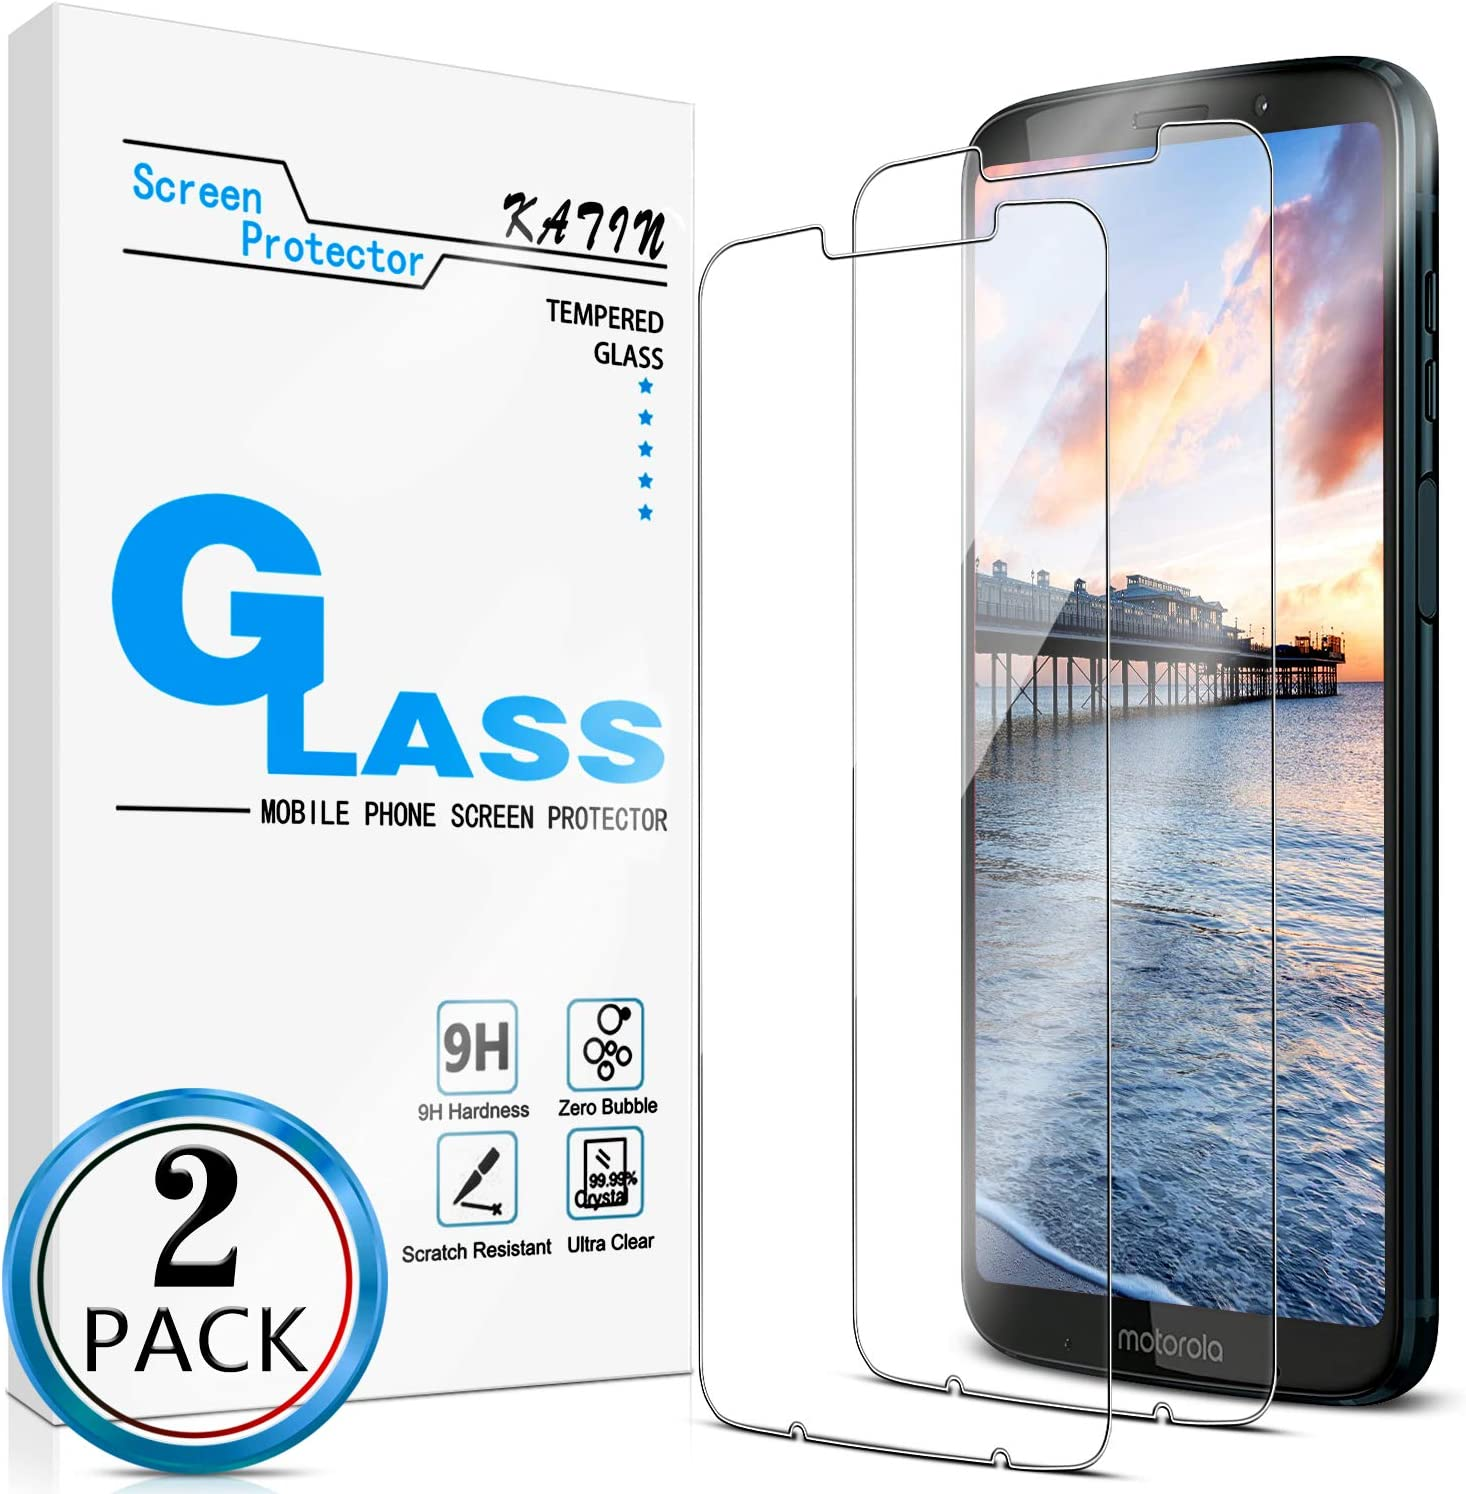 KATIN Moto Z3 Screen Protector - [2-Pack] for Motorola Moto Z3 Play/Moto Z3 Tempered Glass No-Bubble, 9H Hardness, Easy to Install